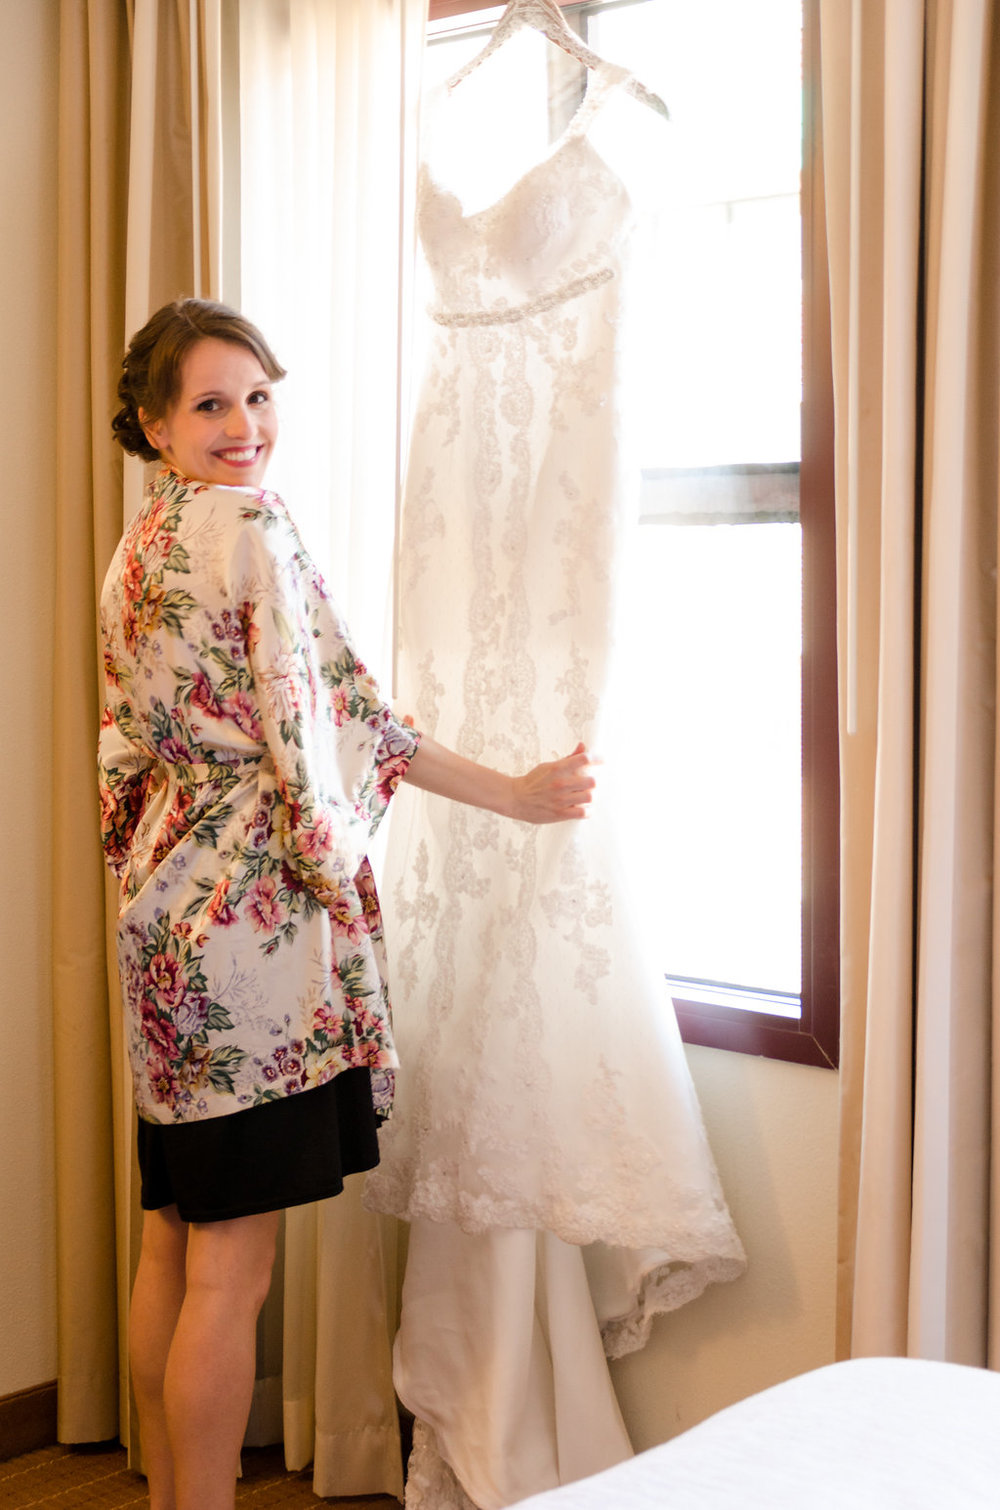 george washington masonic temple wedding bride getting ready photo